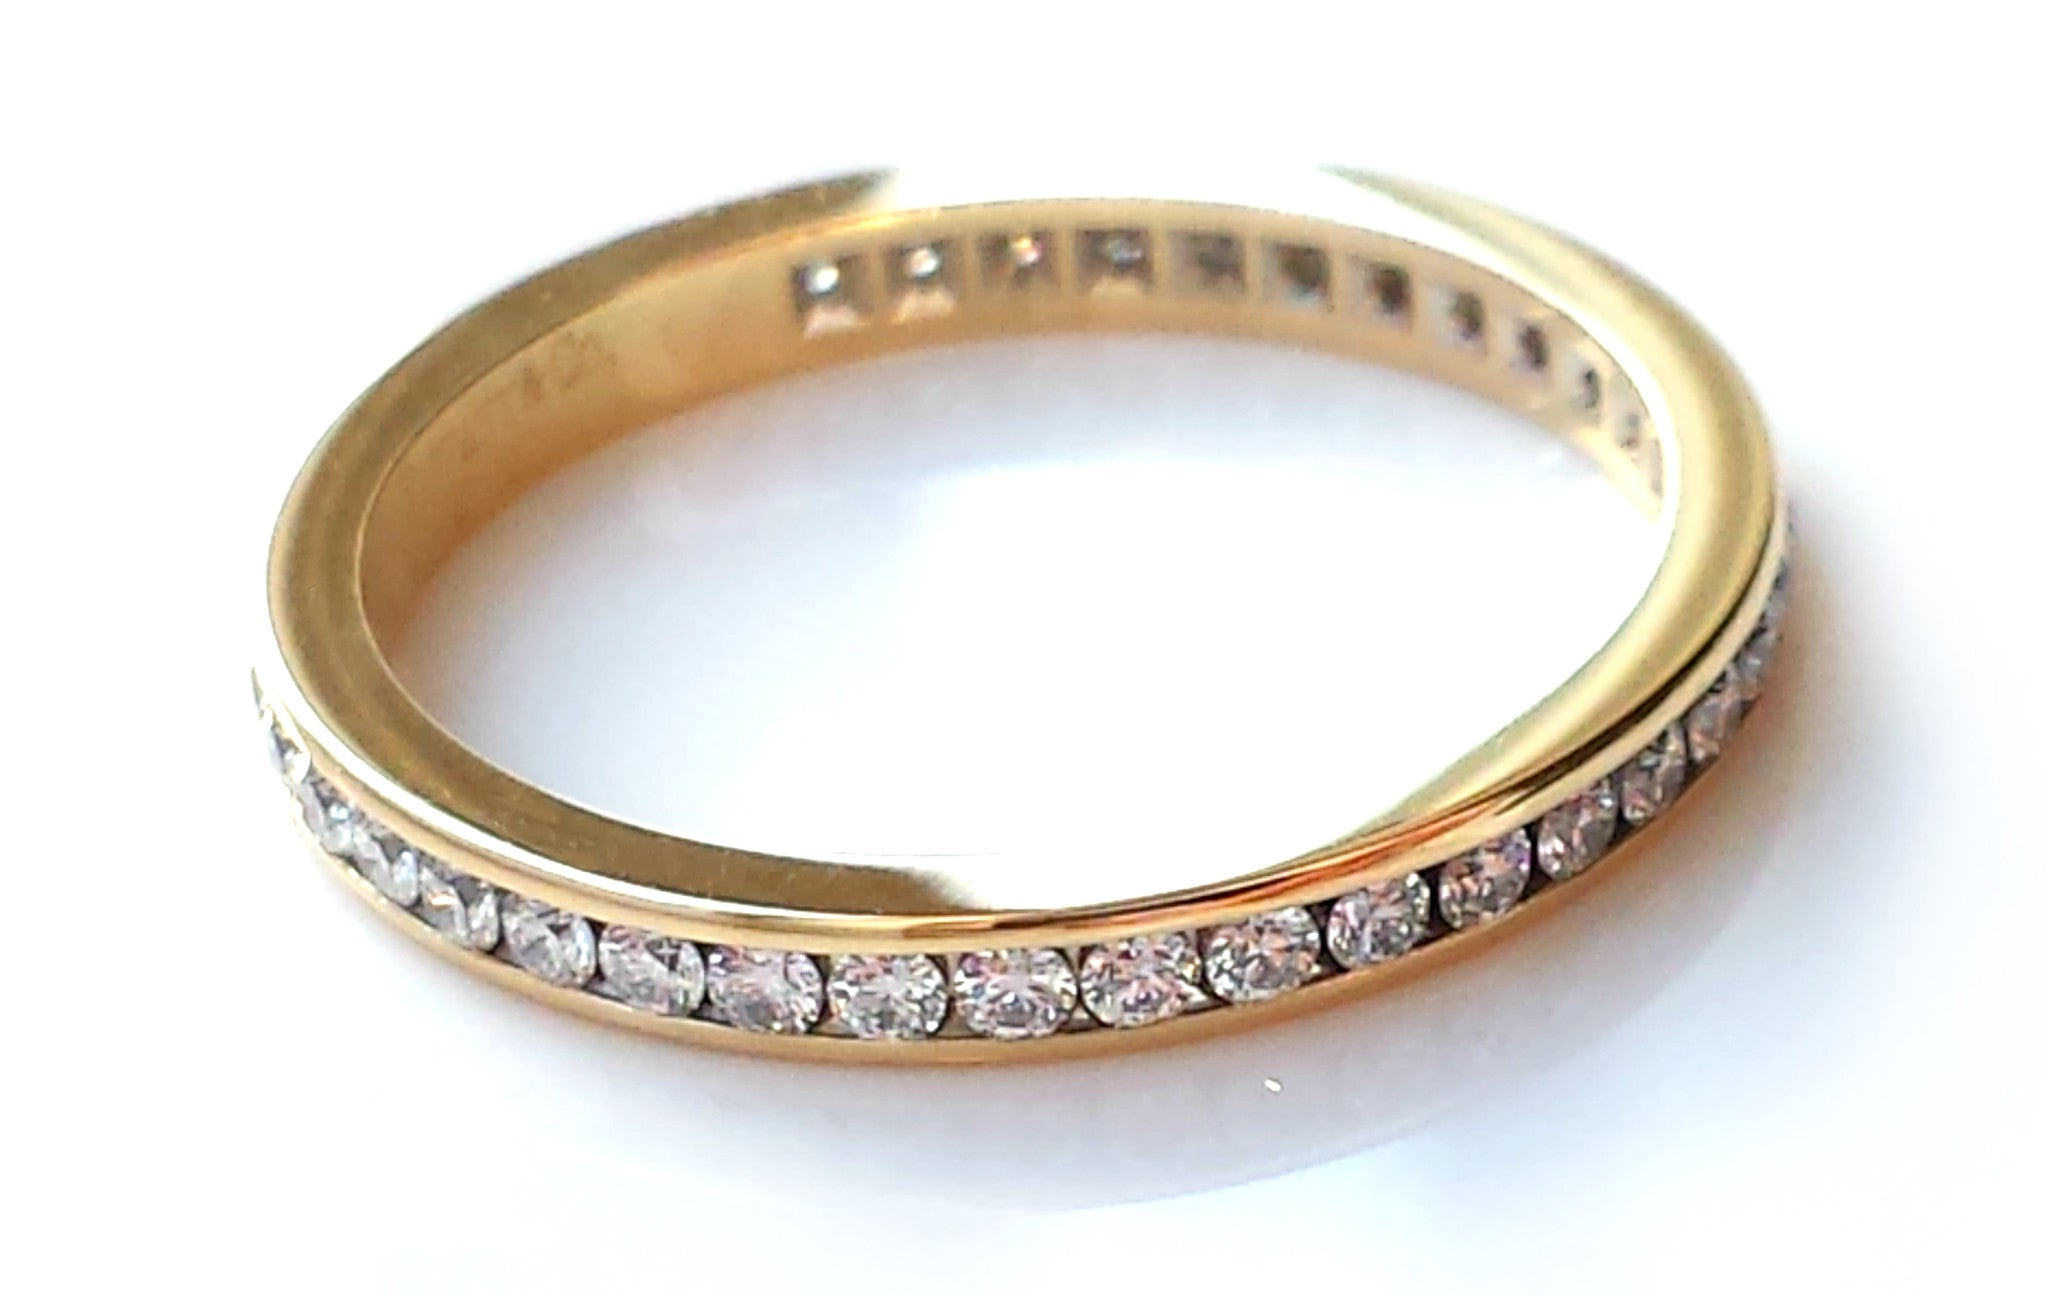 tiffany co 2mm diamond 18k gold eternity ring wedding band size l - Tiffany Wedding Ring